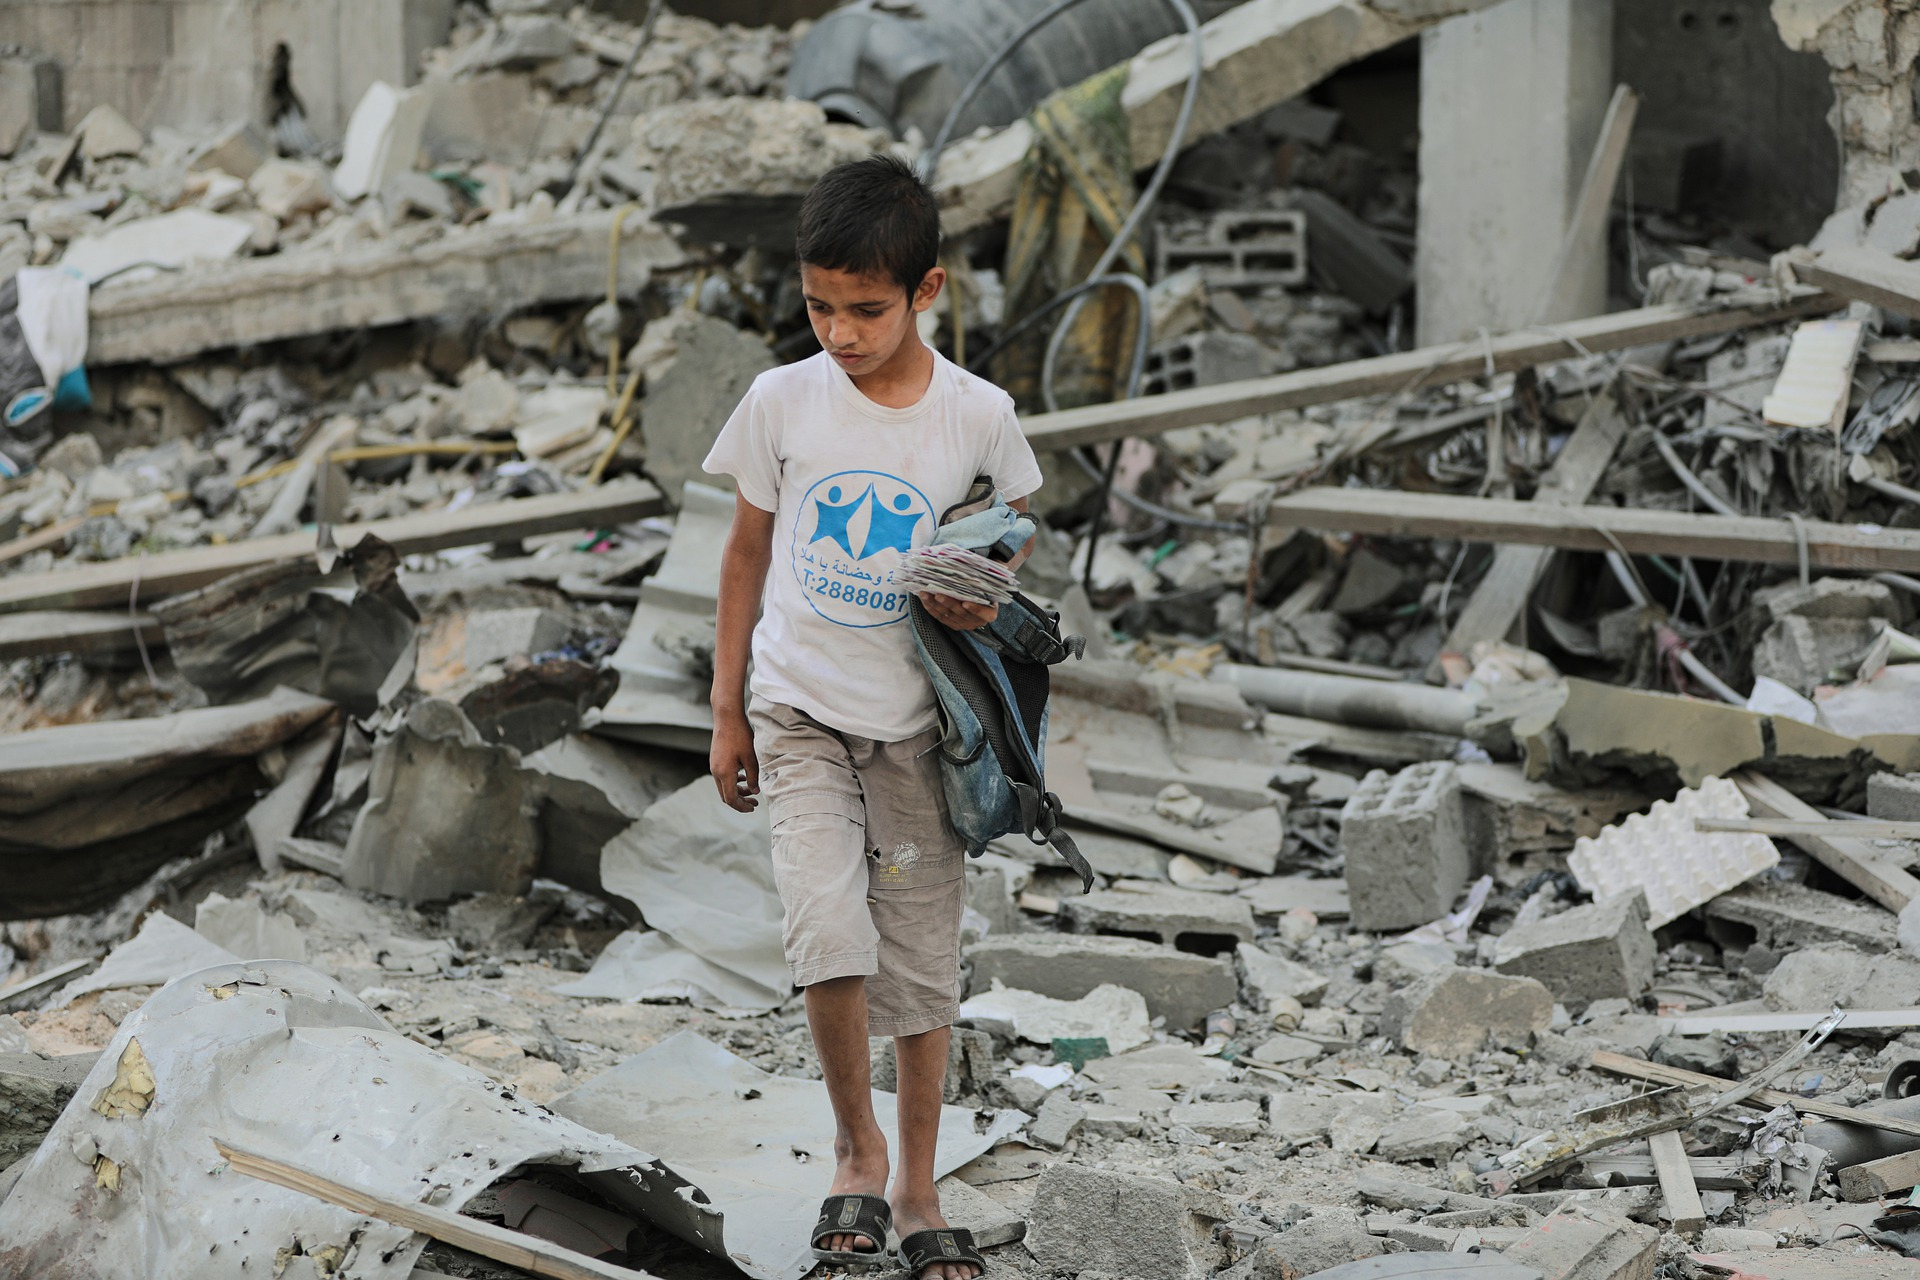 Structural Violence and Early Childhood Development: The Children of Gaza